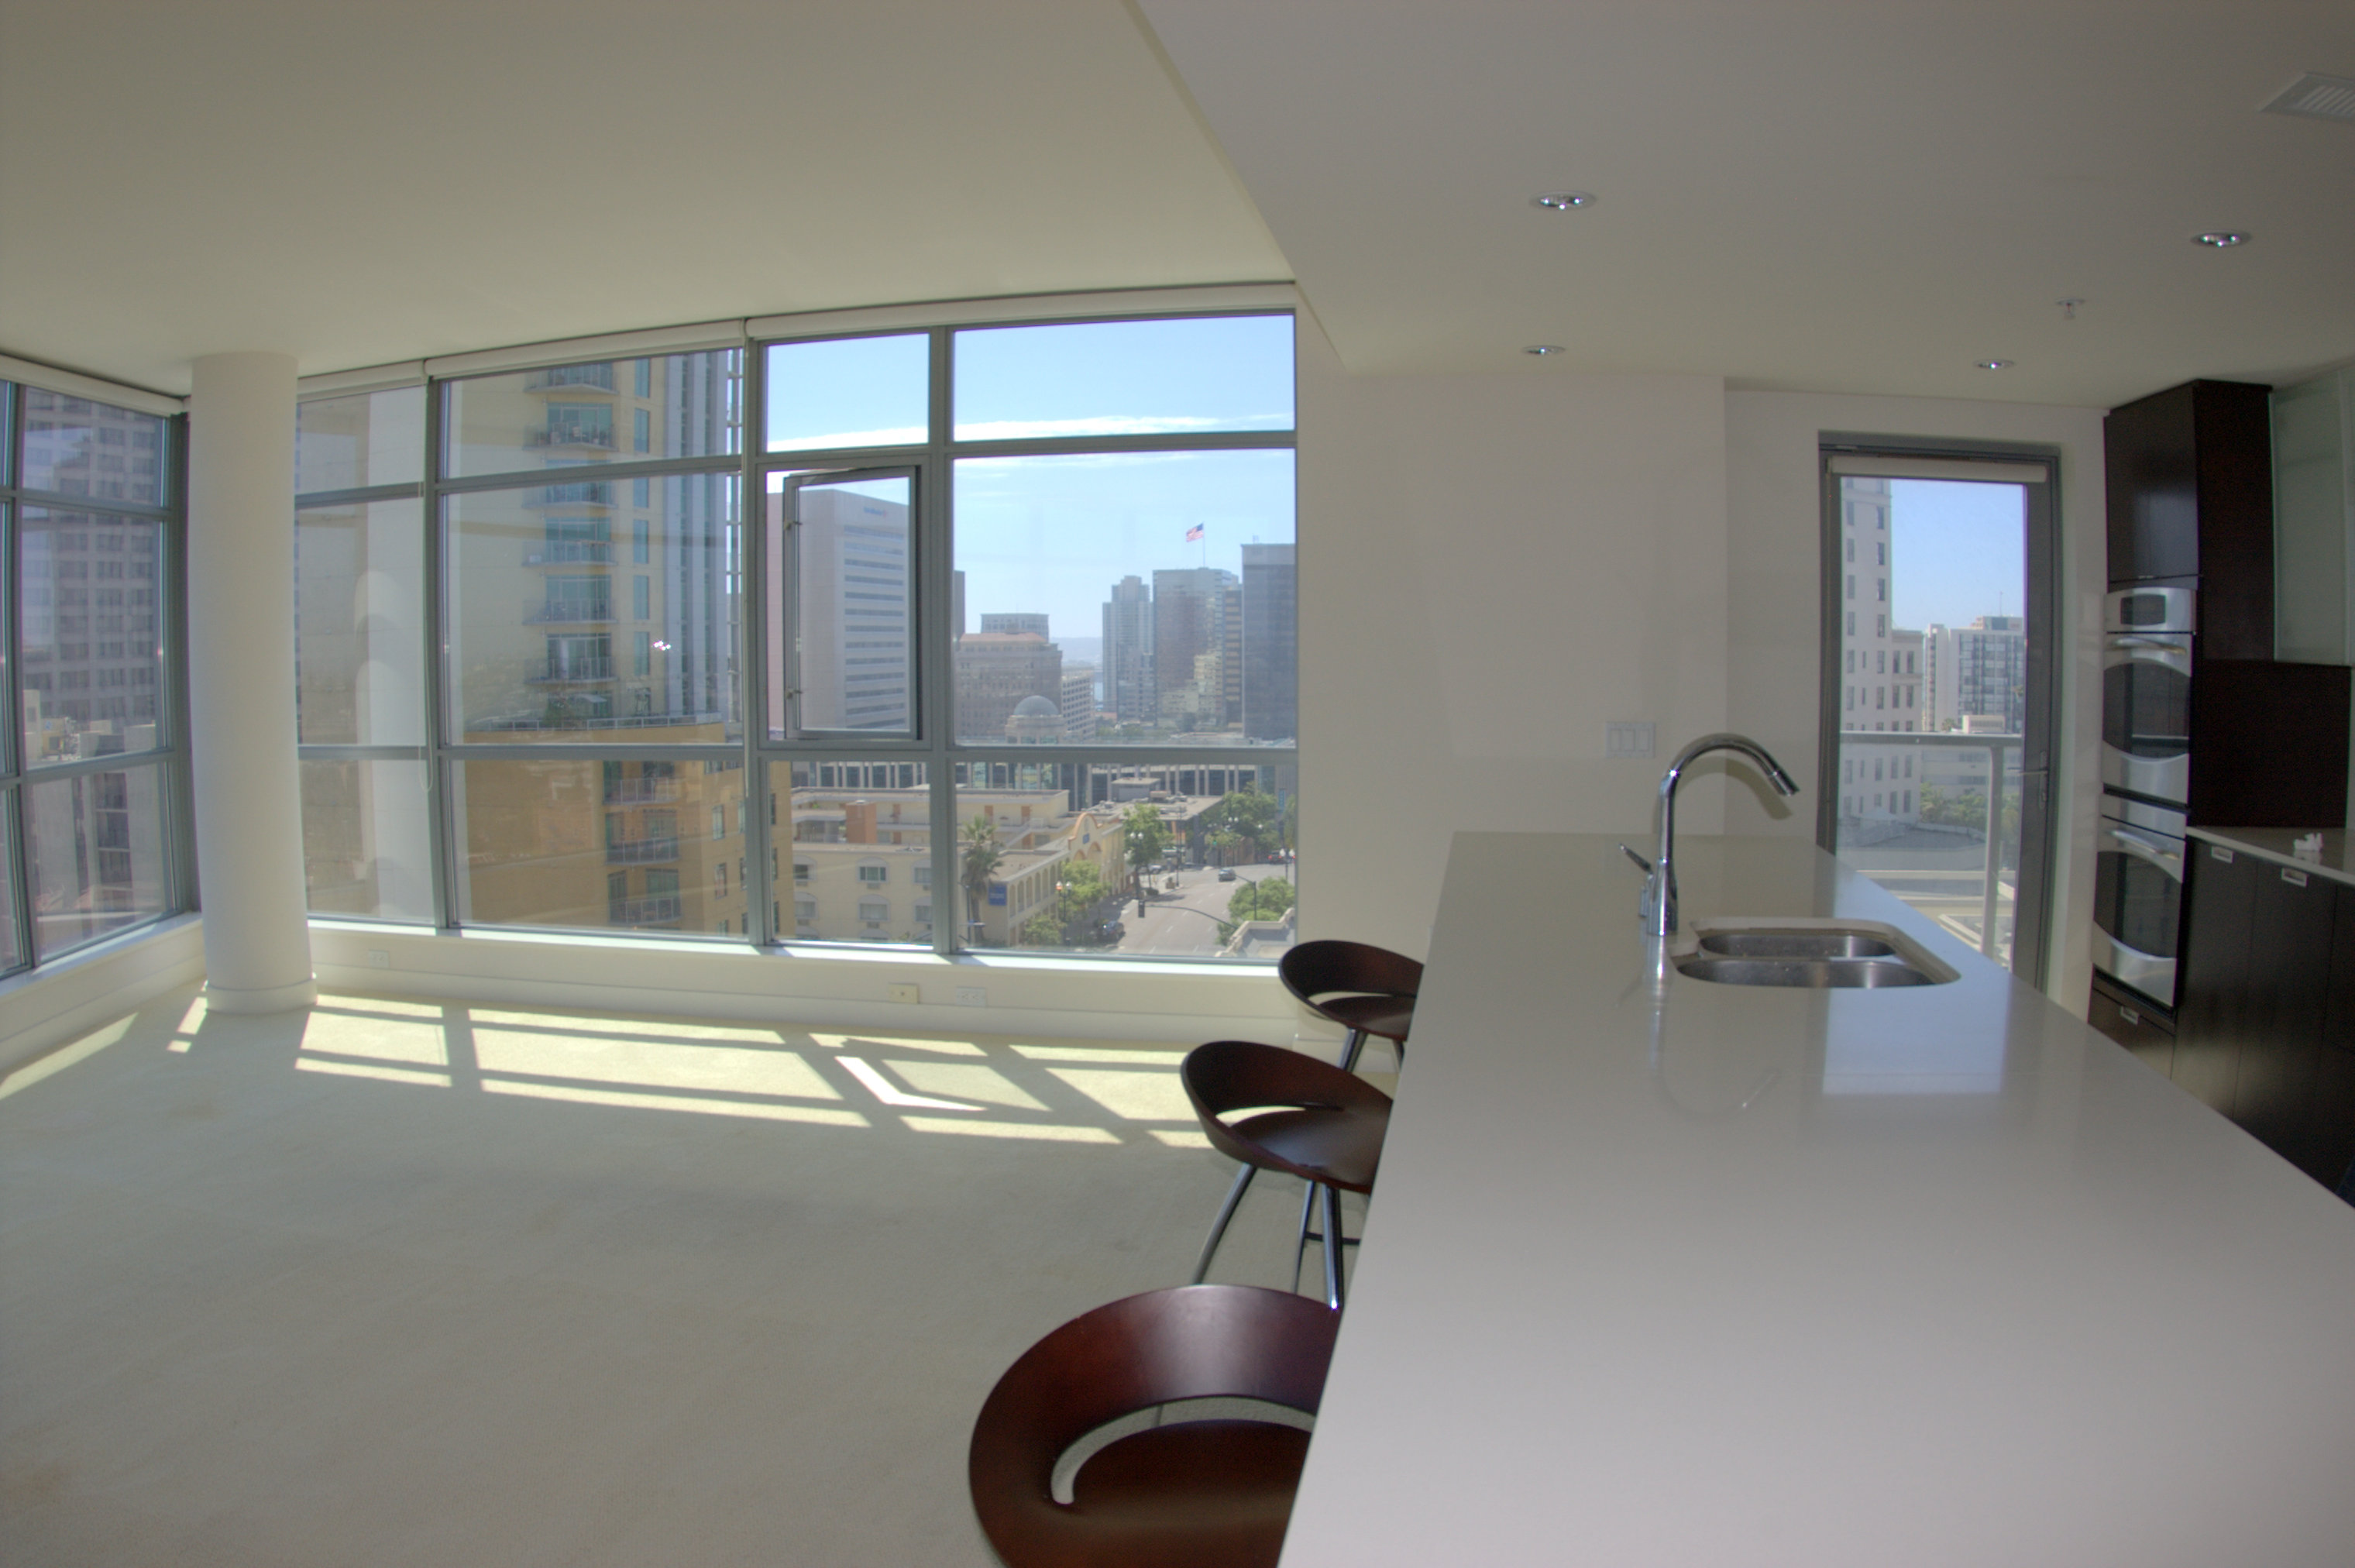 FOR RENT: Southwest Facing Corner Condo in Aria